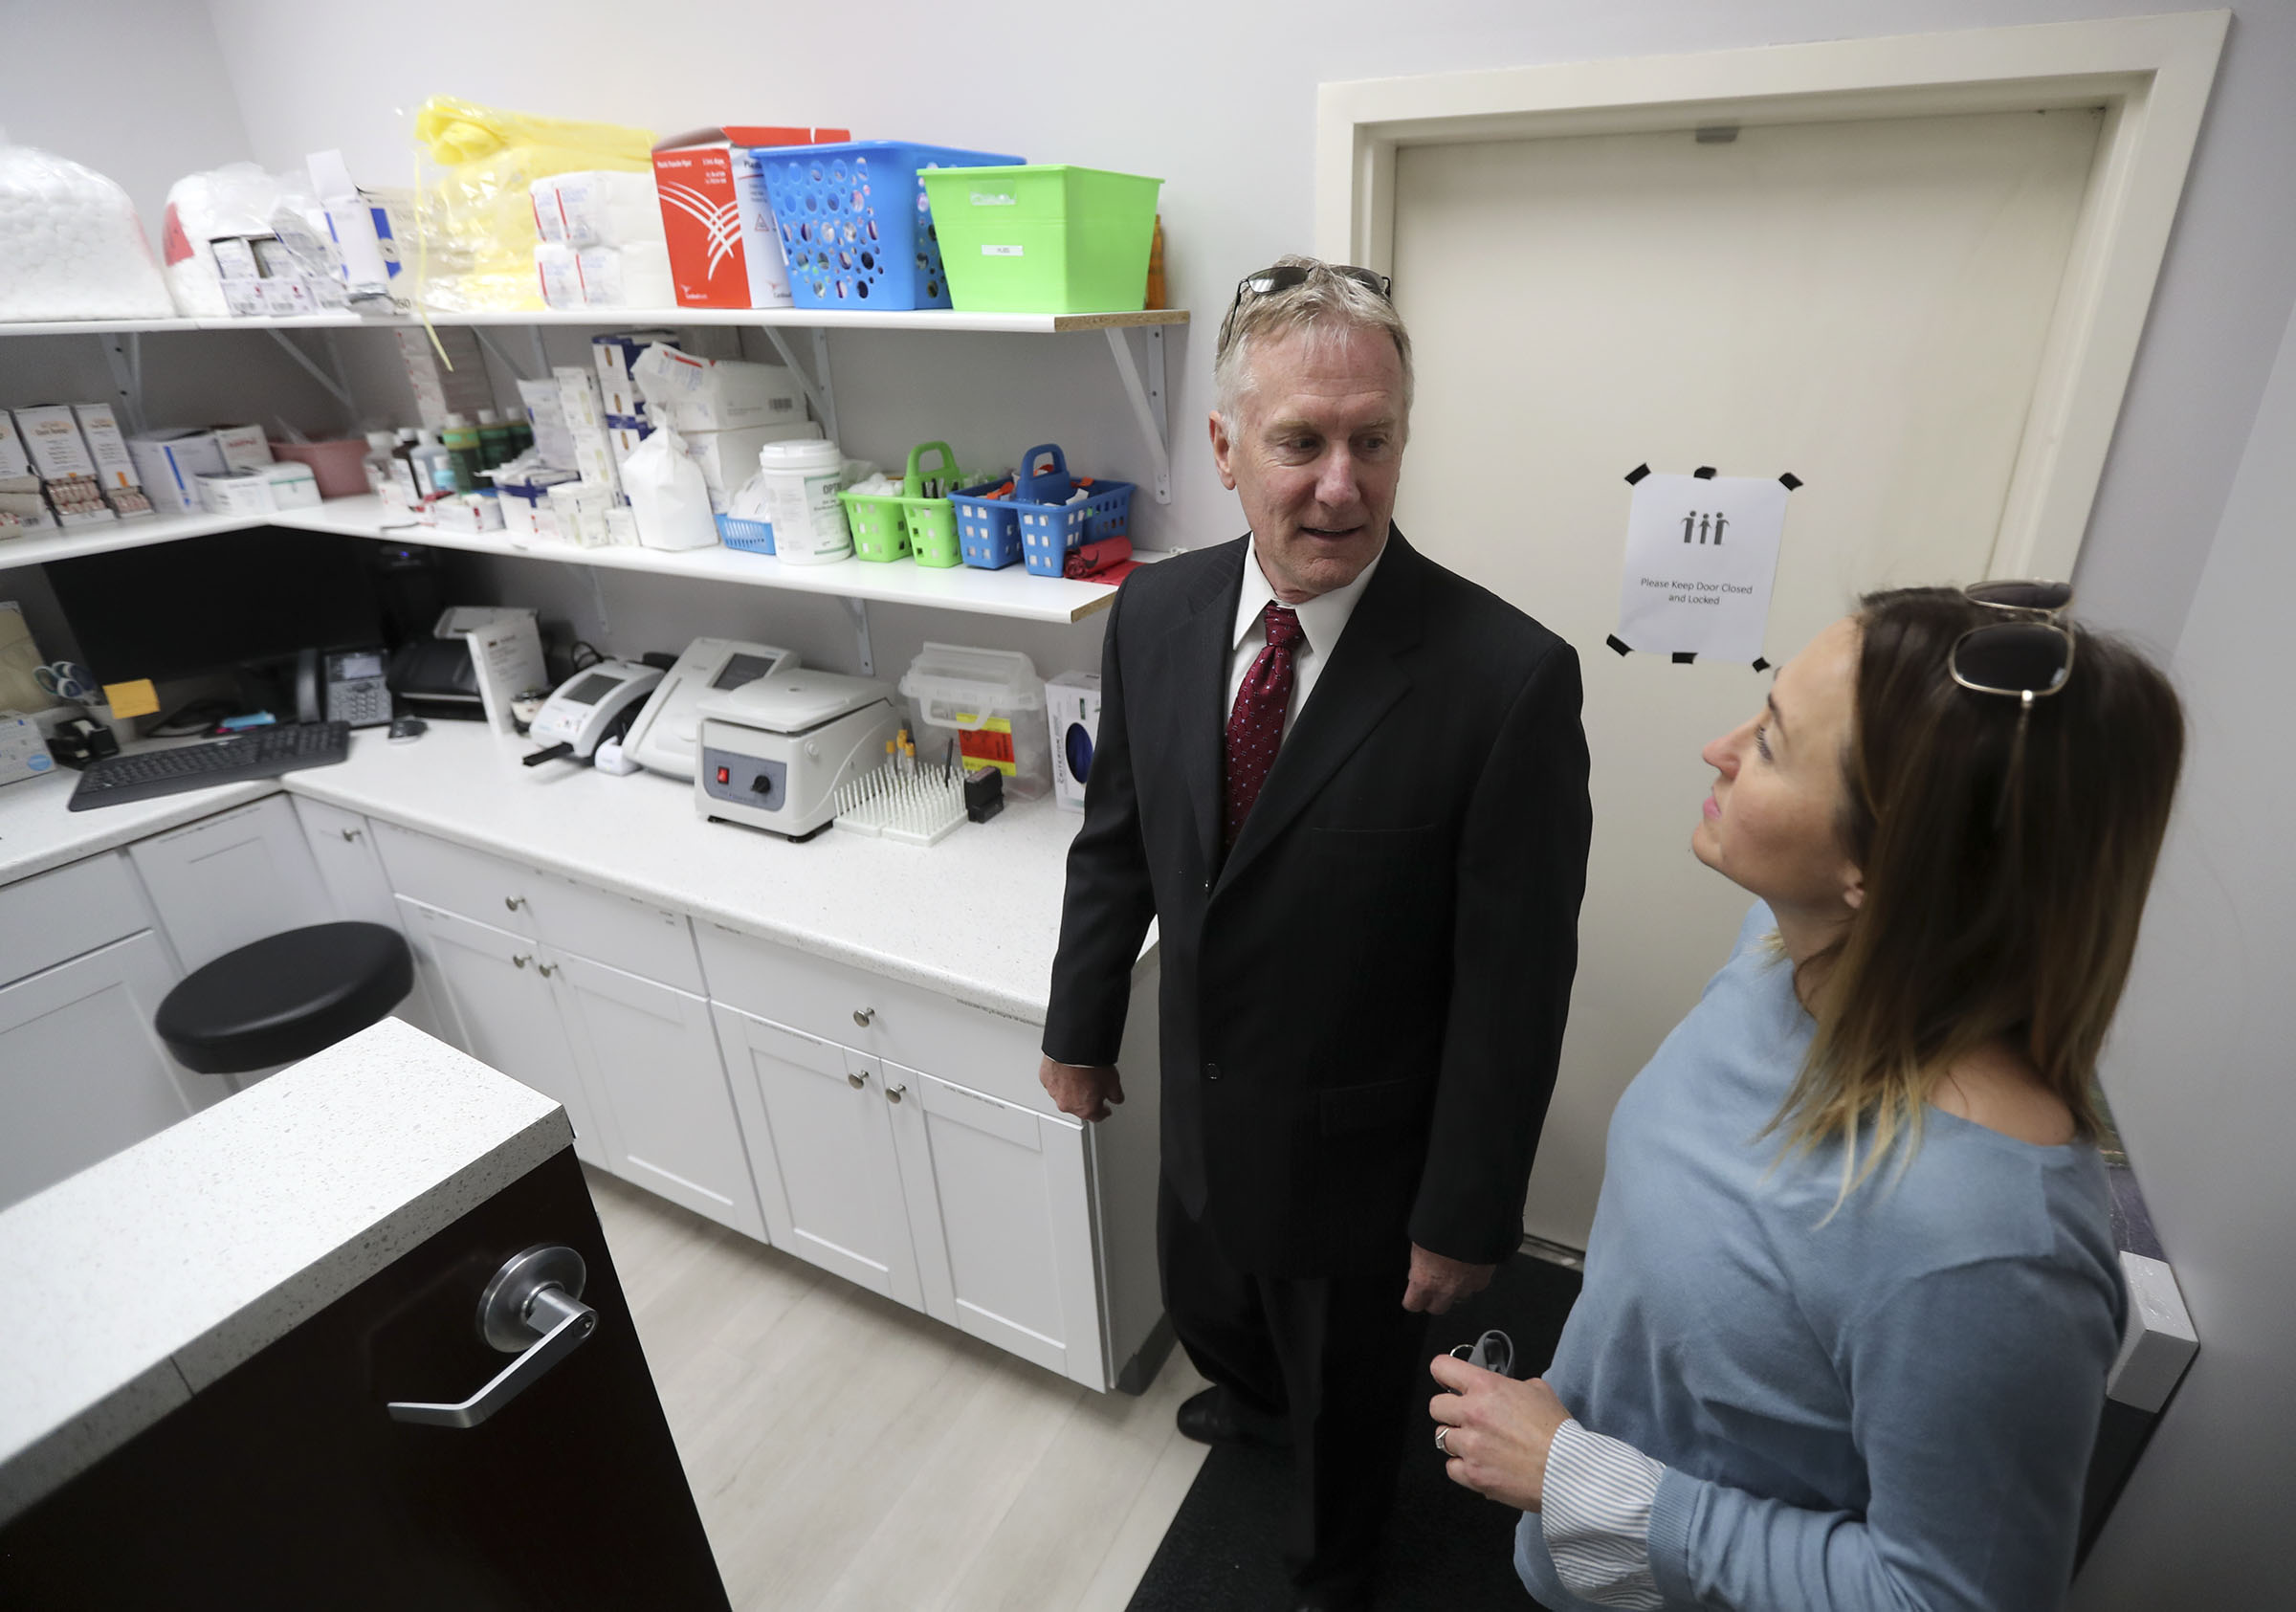 Kurt Micka, executive director of Utah Partners for Health, gives Jennifer Pewder, a registered nurse with the Salt Lake County Health Department, a tour of the new Utah Partners for Health Family Clinic in West Jordan on Friday, Nov. 8, 2019.